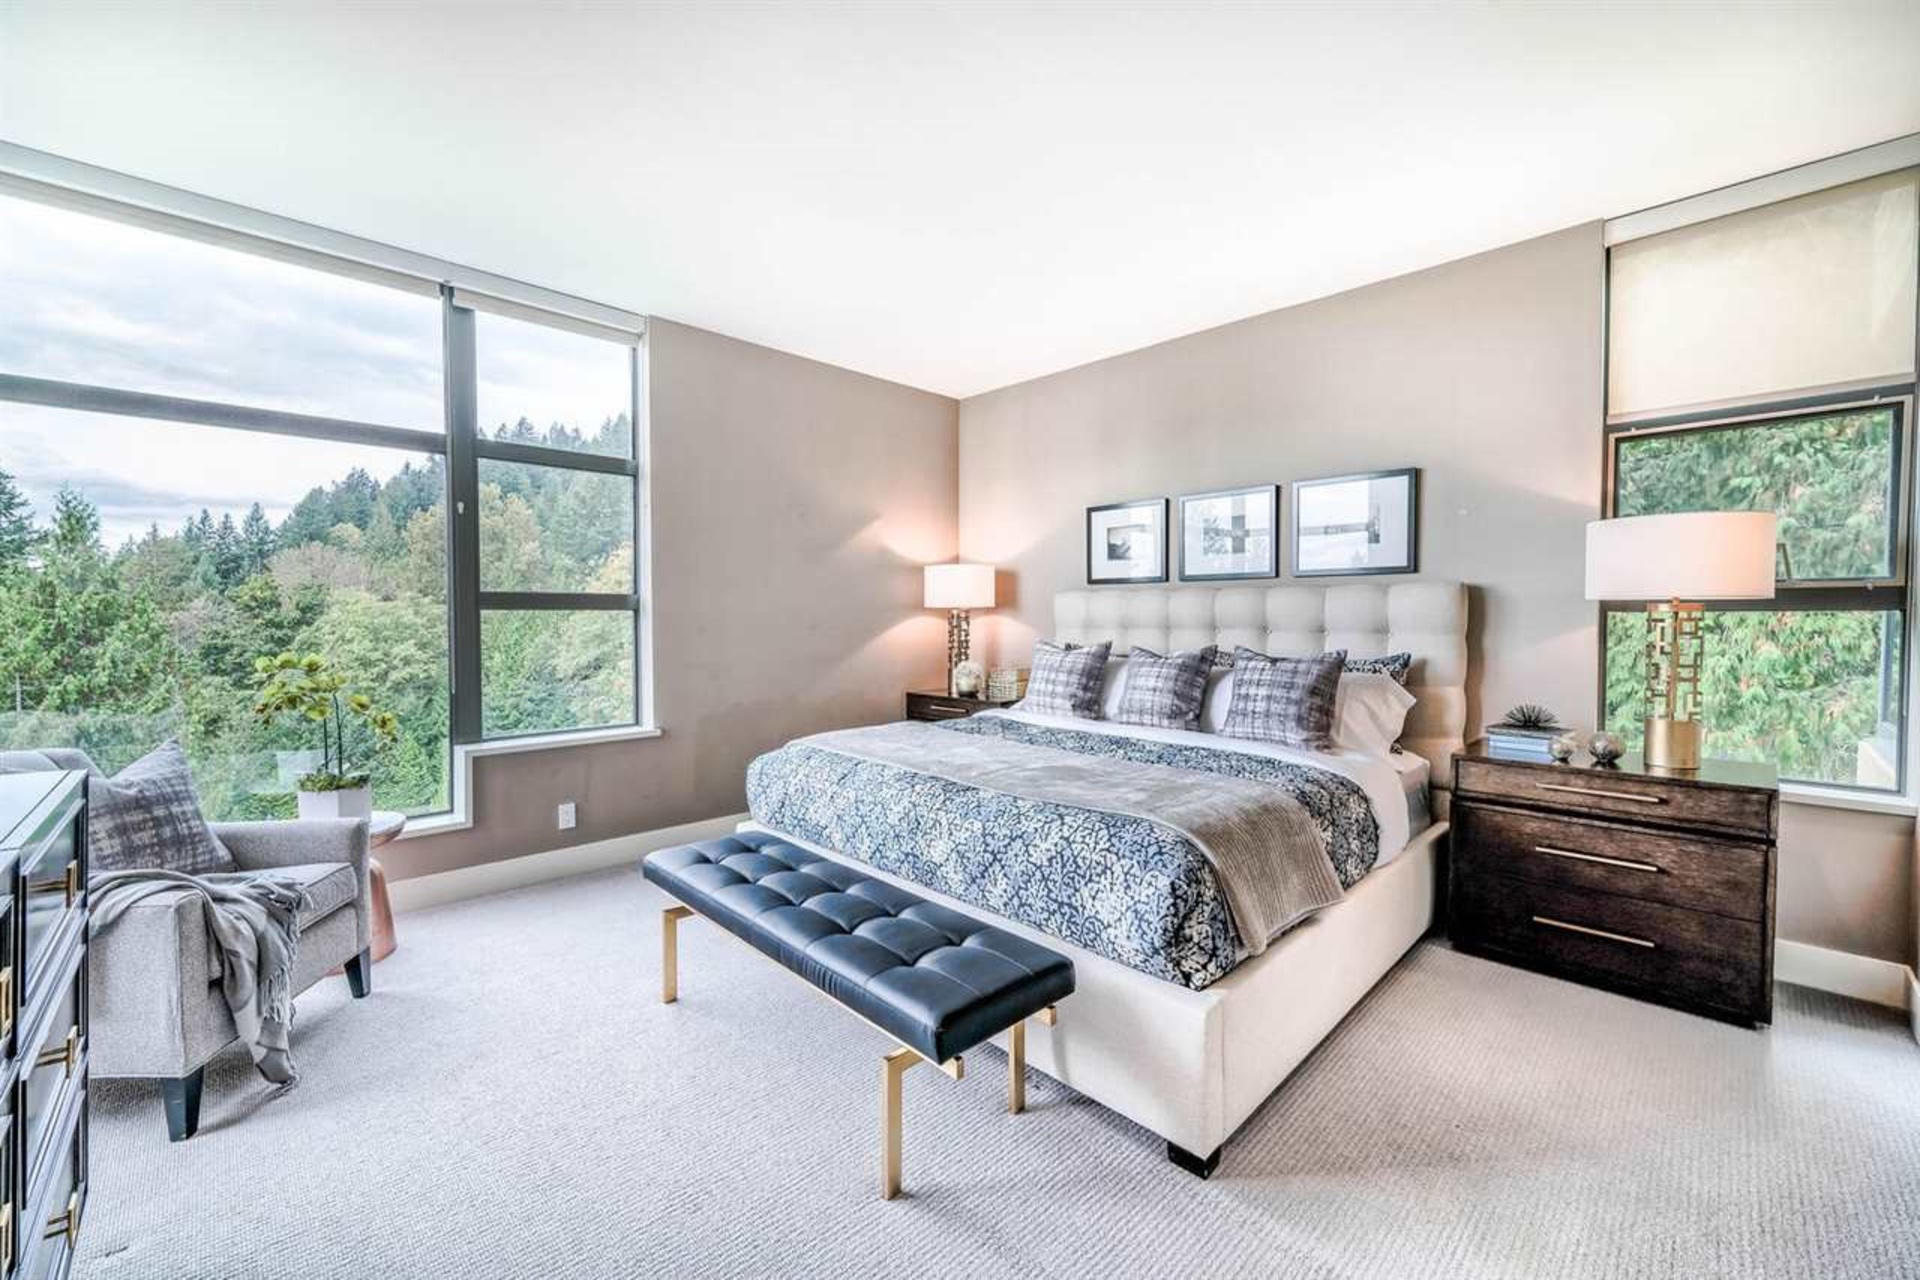 262529205-26 at 1103 - 3355 Cypress, Cypress, West Vancouver